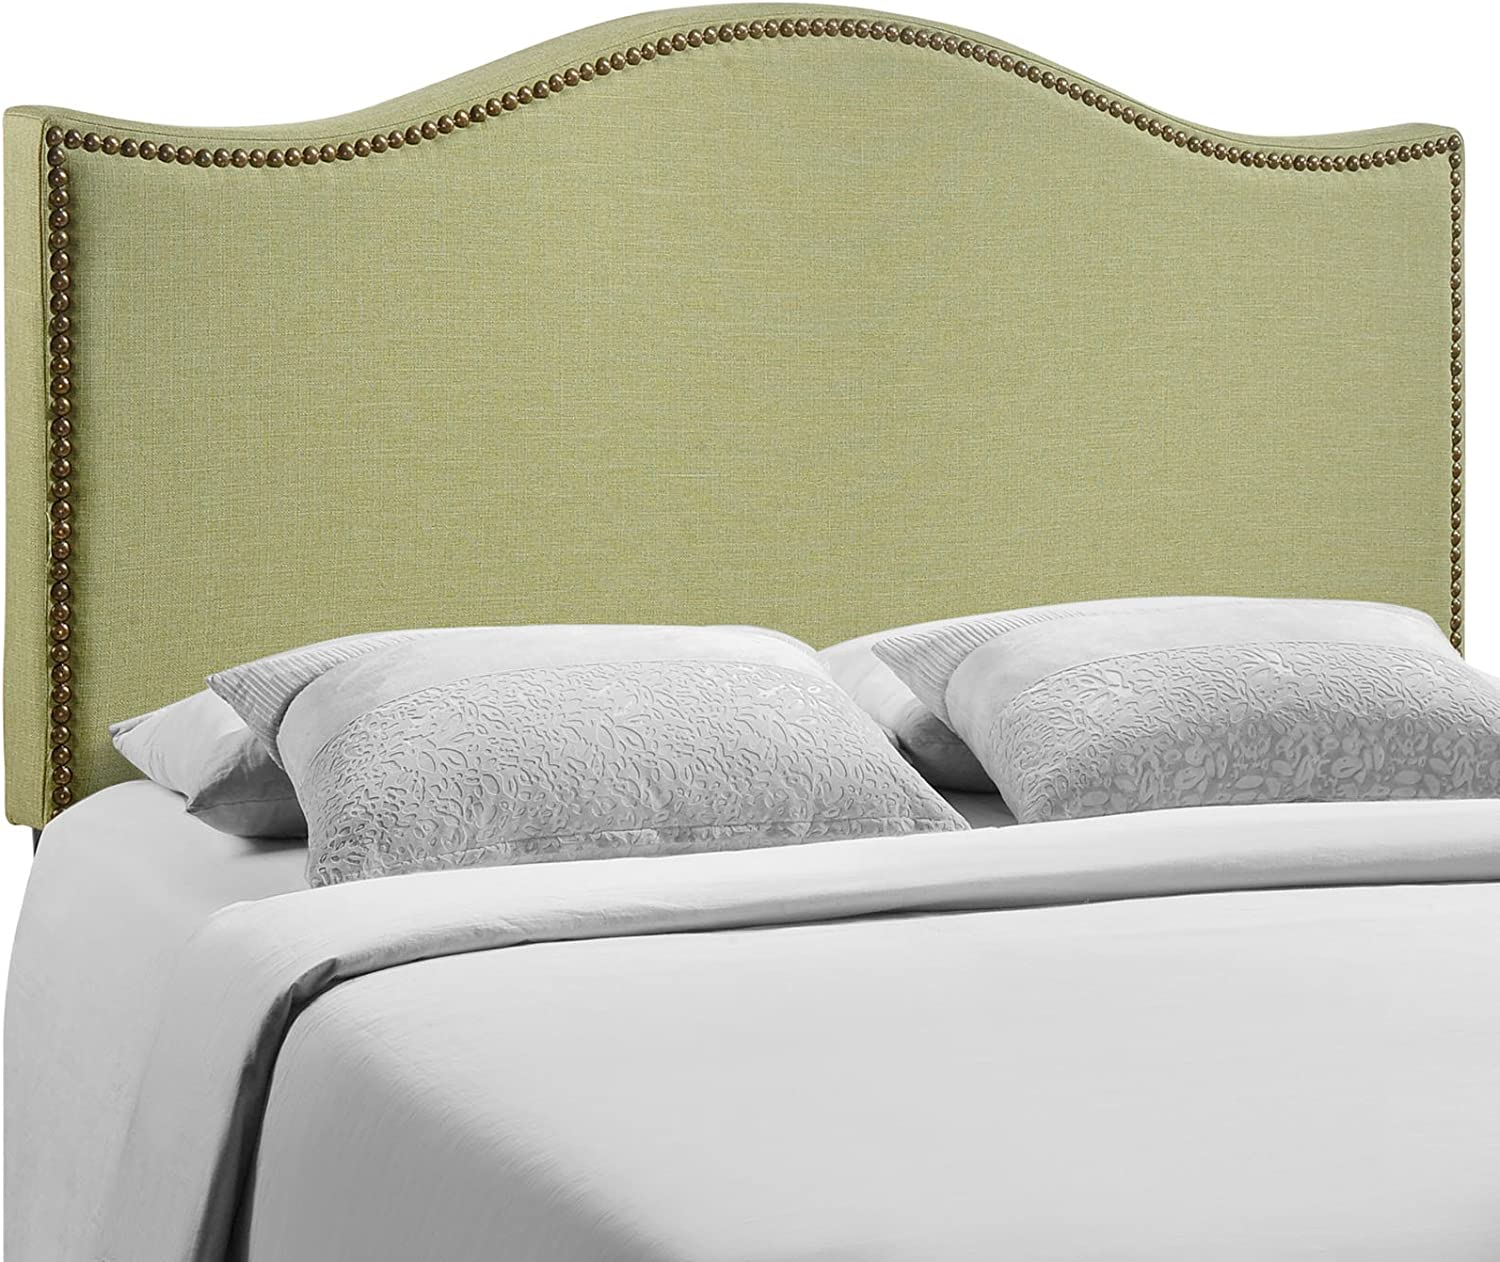 Modway Curl Queen Nailhead Upholstered Headboard in Green